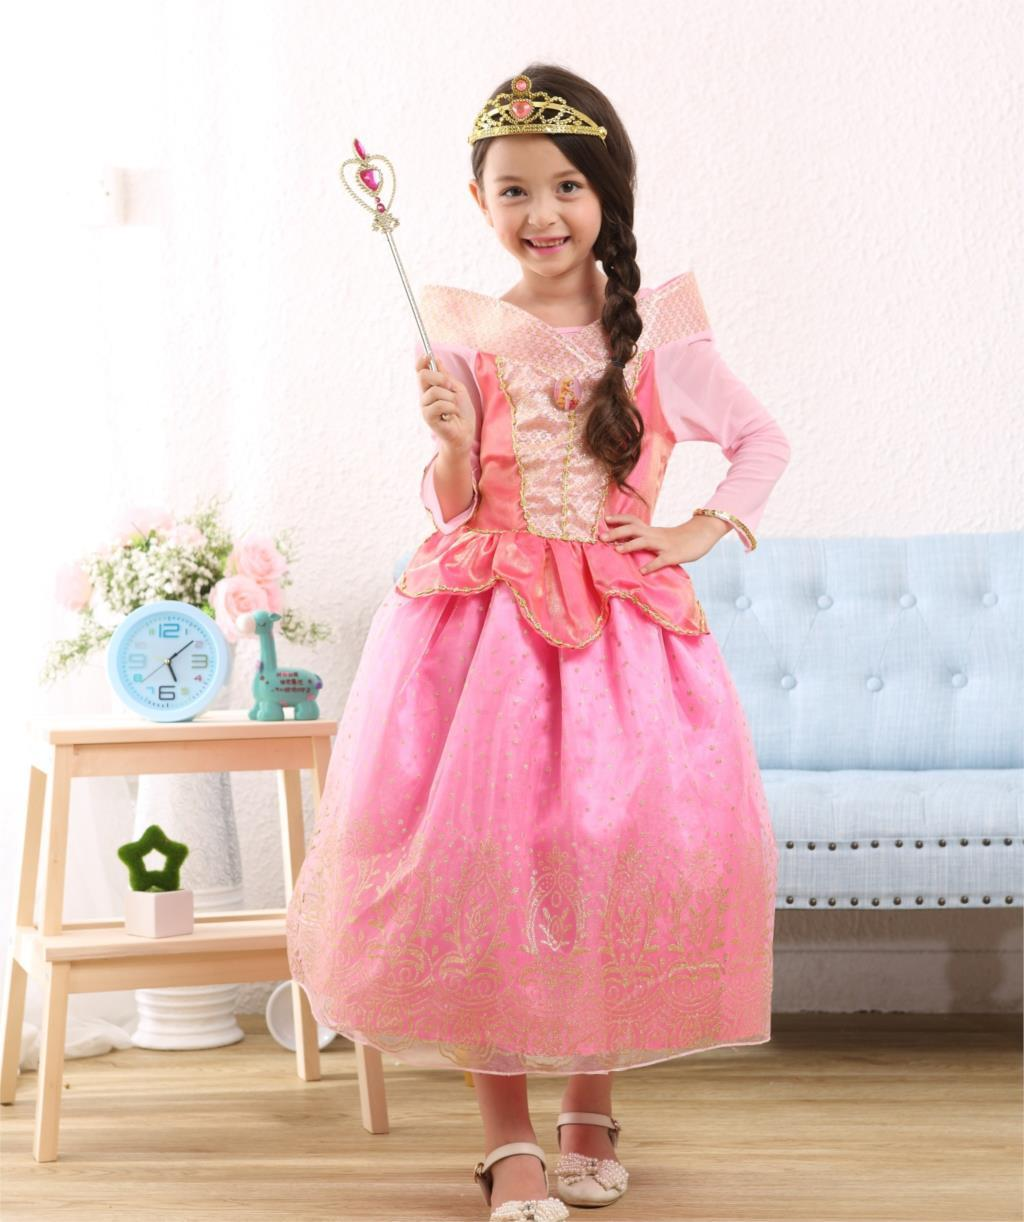 Princess Aurora Costume For Girls Aurora Sleeping Beauty Dress Kids Dress Baby Cosplay Sleeping Beauty Aurora Child Costume Movie Cosplay Costumes For Sale ...  sc 1 st  DHgate.com & Princess Aurora Costume For Girls Aurora Sleeping Beauty Dress Kids ...